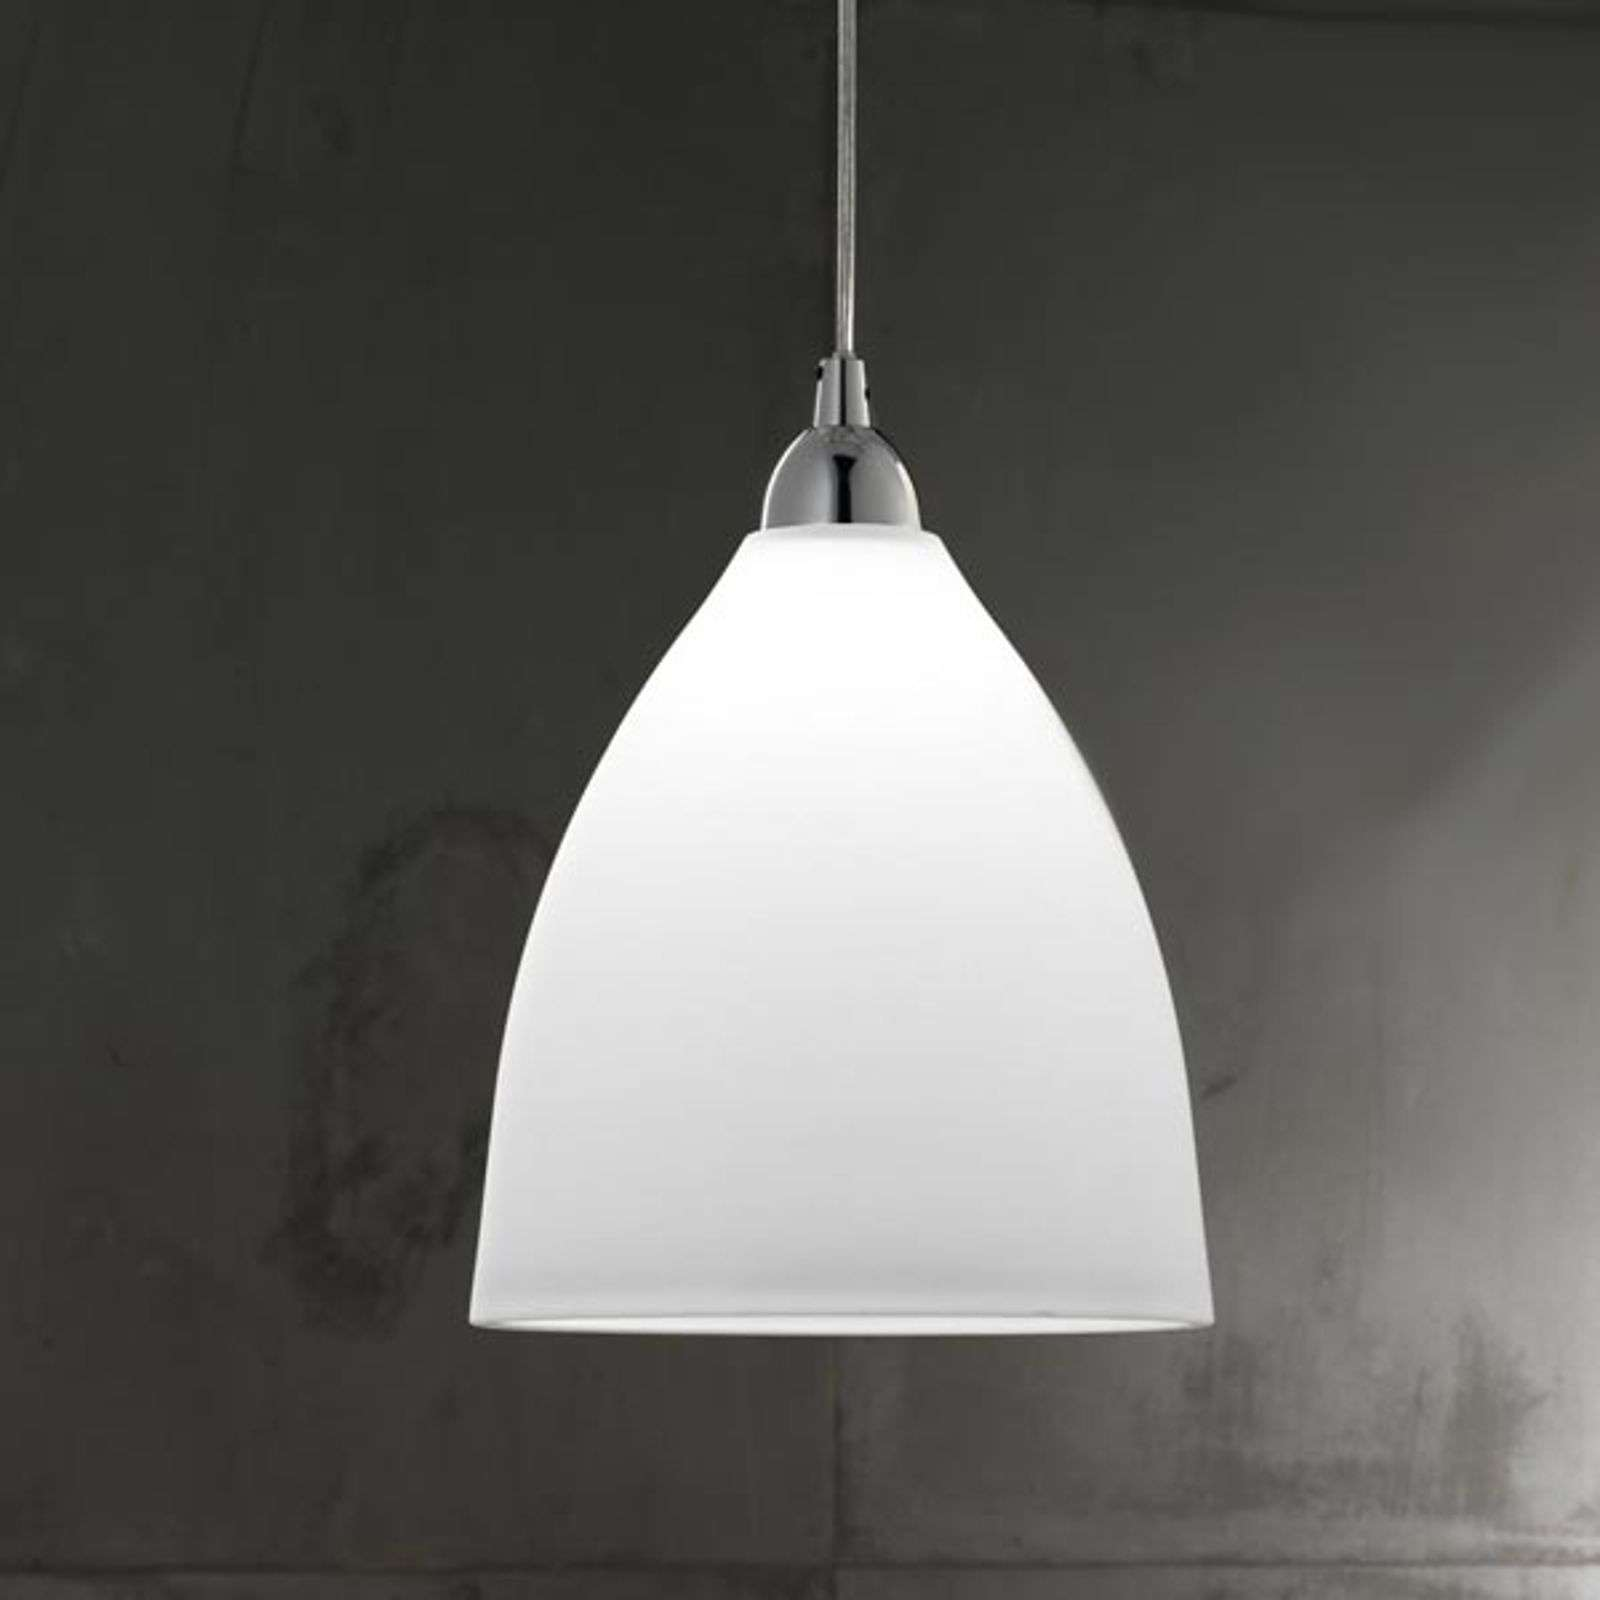 Suspension en verre PROVENZA 20 cm blanc